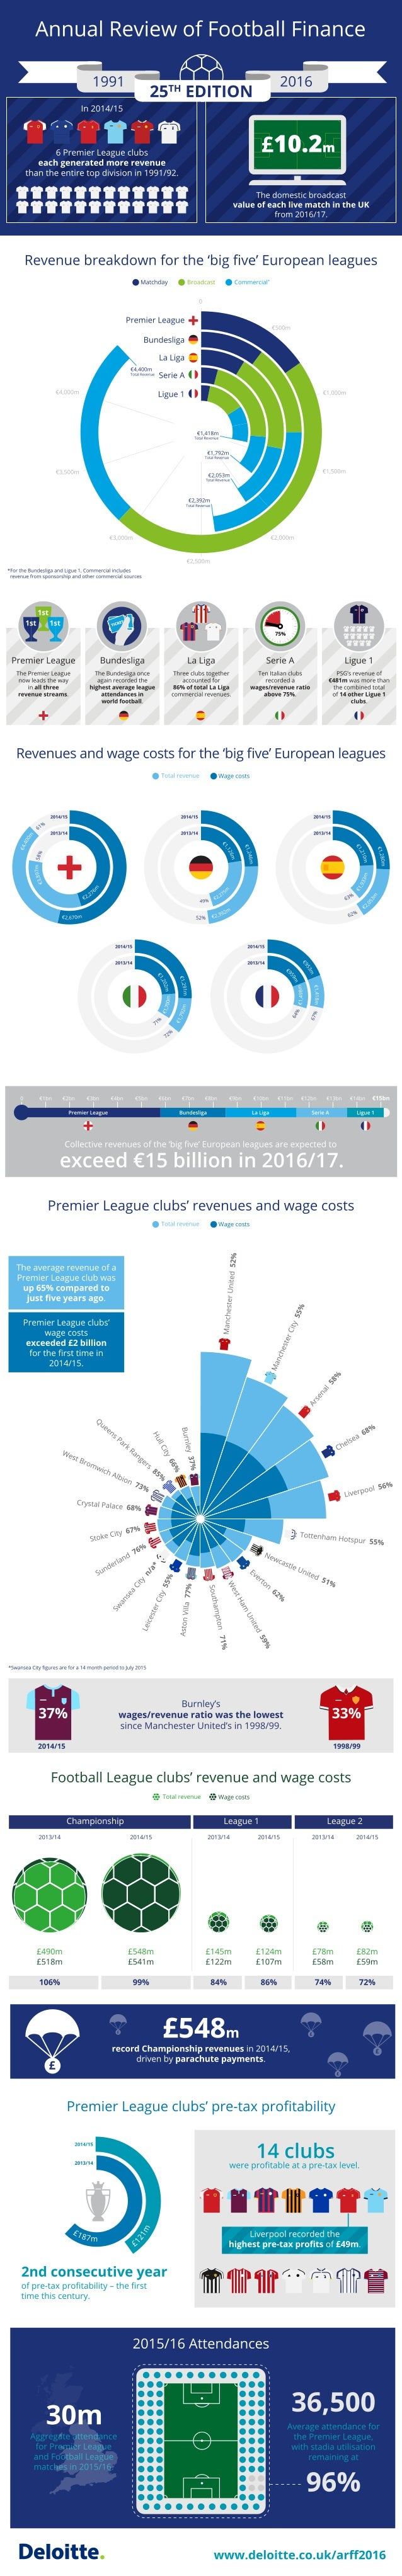 Deloitte UK Annual Review of Football Finance infographic